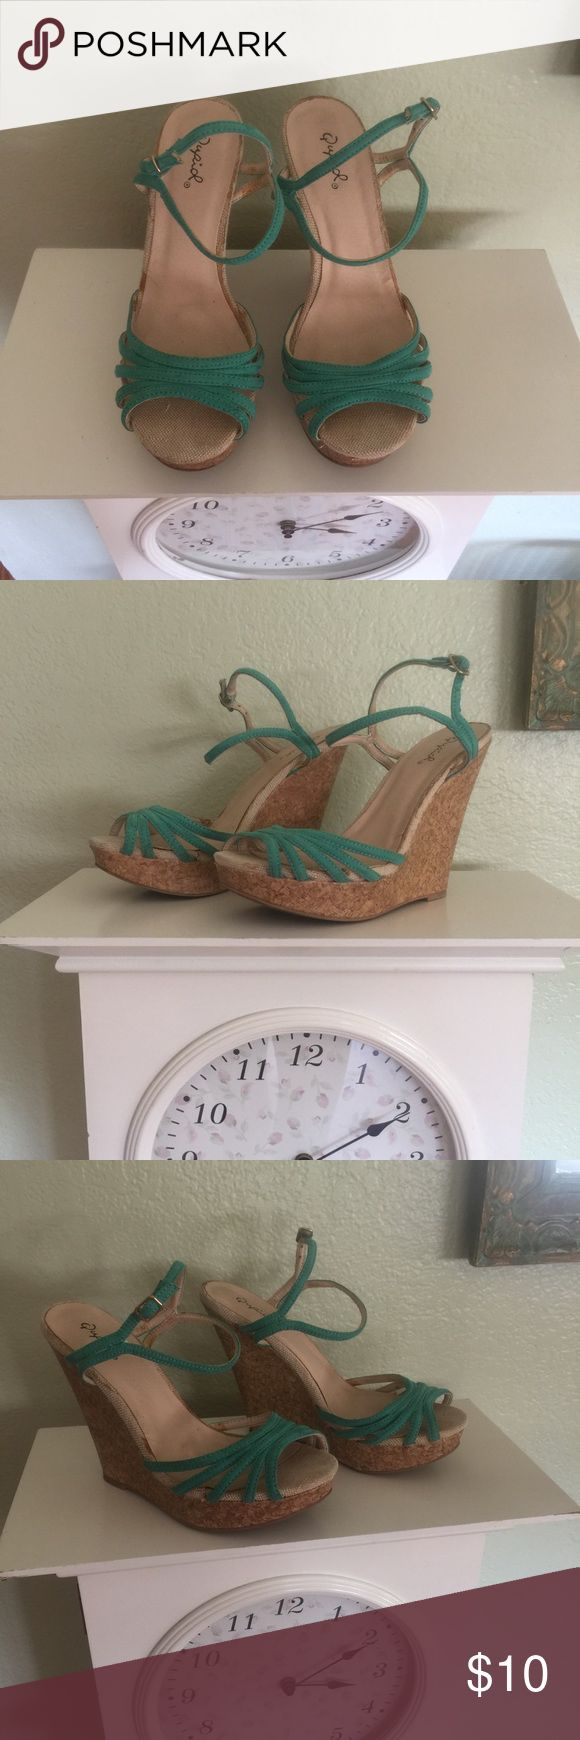 Aqua/Teal wedges ✨ 🍍Cute wedges for the summer🏝 Shoes Wedges